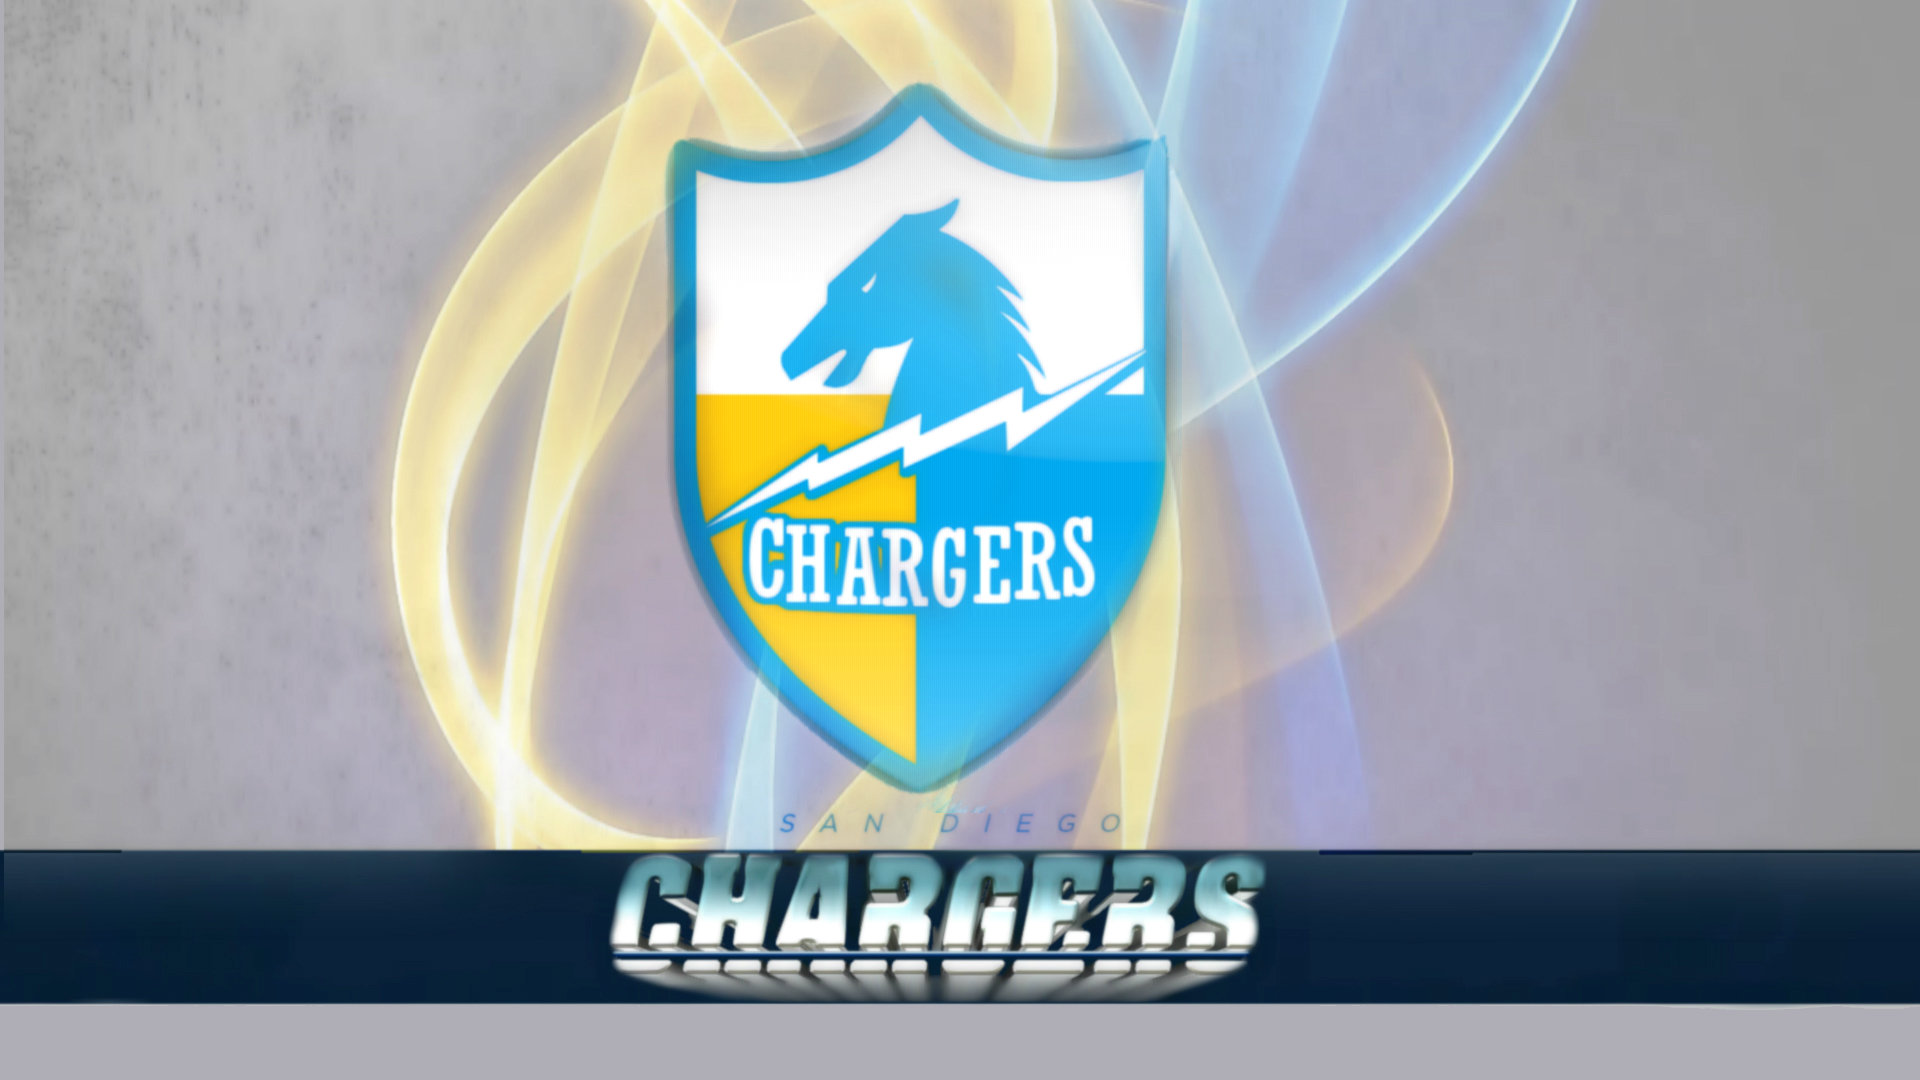 San diego chargers wallpapers hd for desktop backgrounds best san diego chargers wallpaper id451694 for high resolution full hd 1080p desktop voltagebd Images